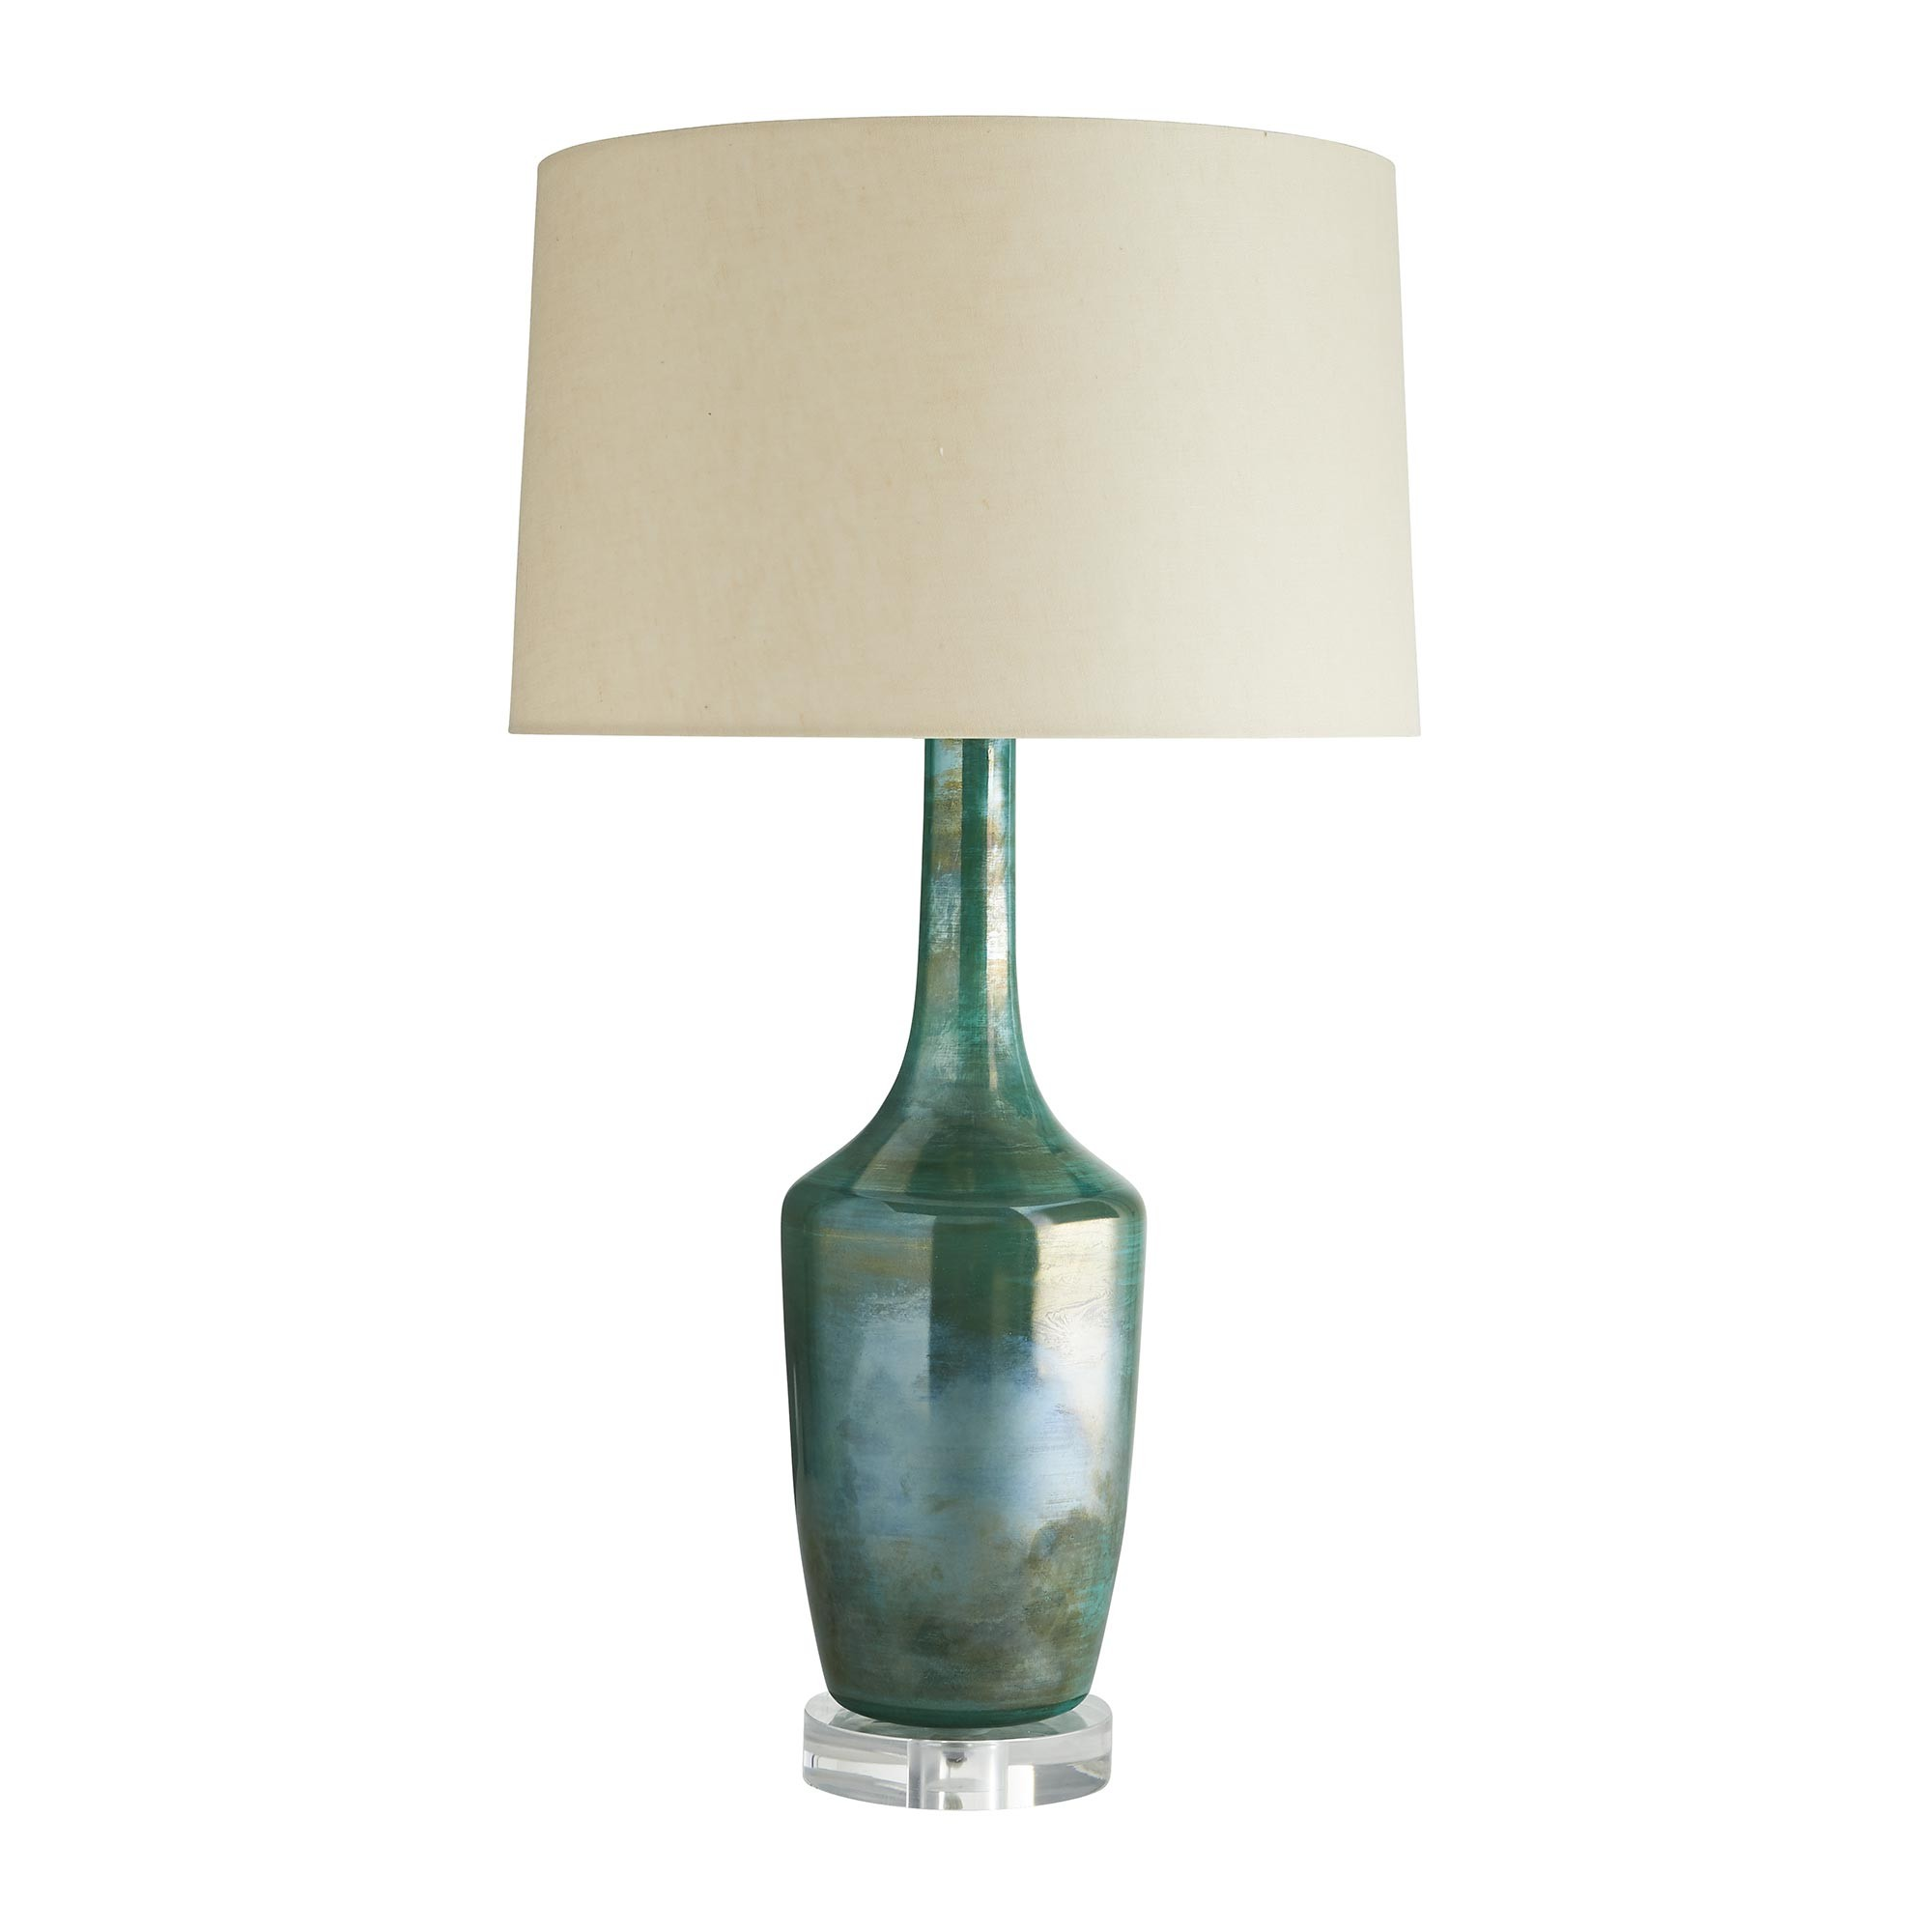 Jade Bottle Lamp-$285.00